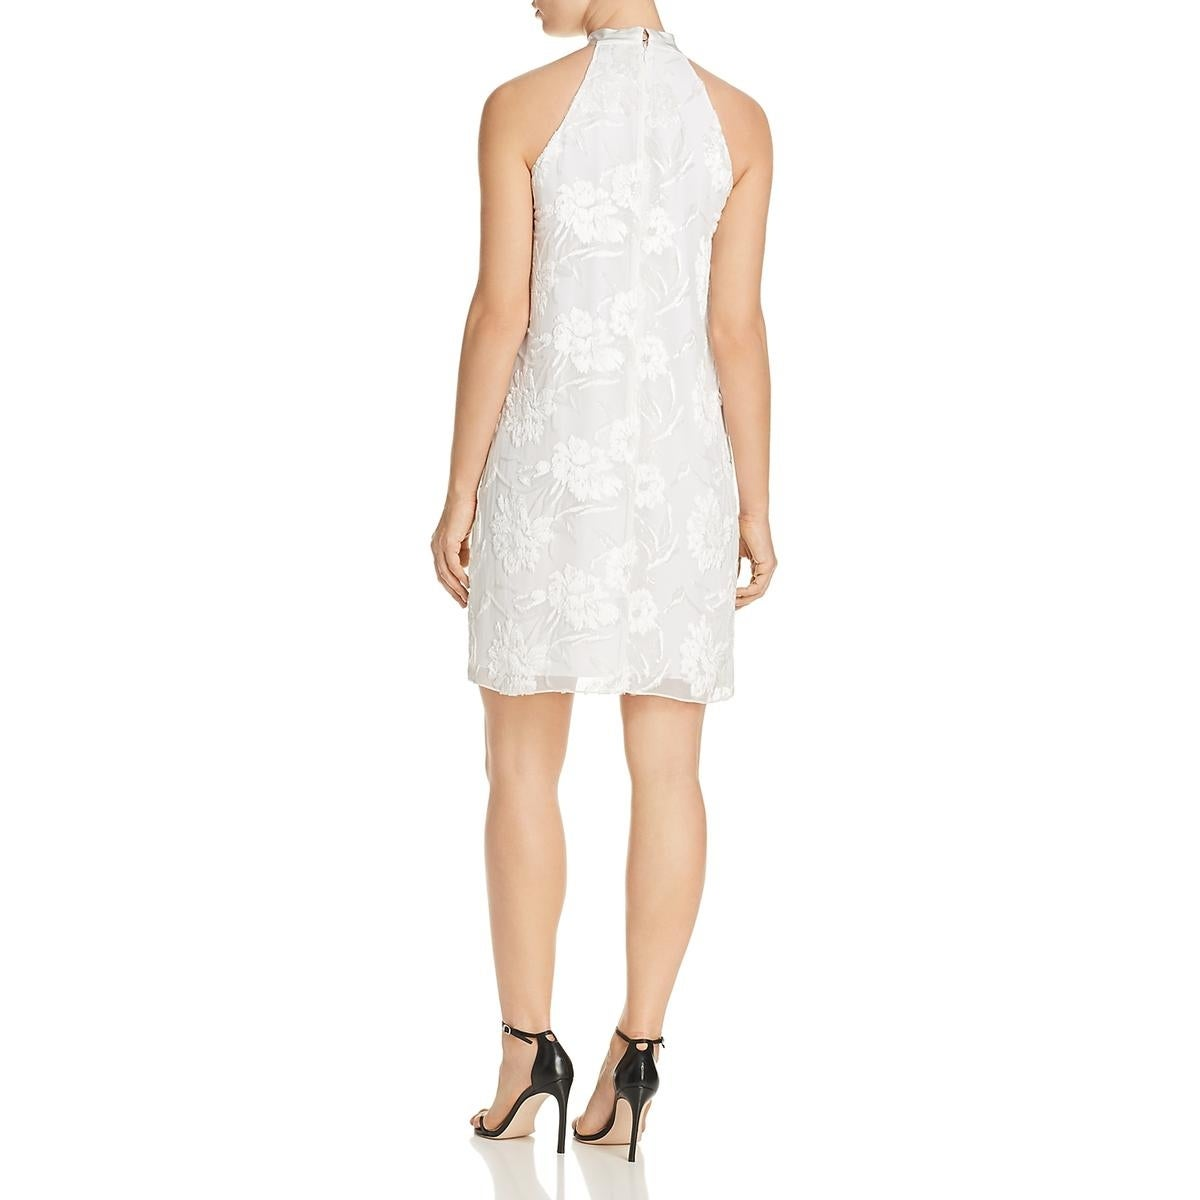 d267e4f1bf Shop Elie Tahari Womens Anika Cocktail Dress Silk Mini - Free Shipping On  Orders Over  45 - Overstock - 26264637